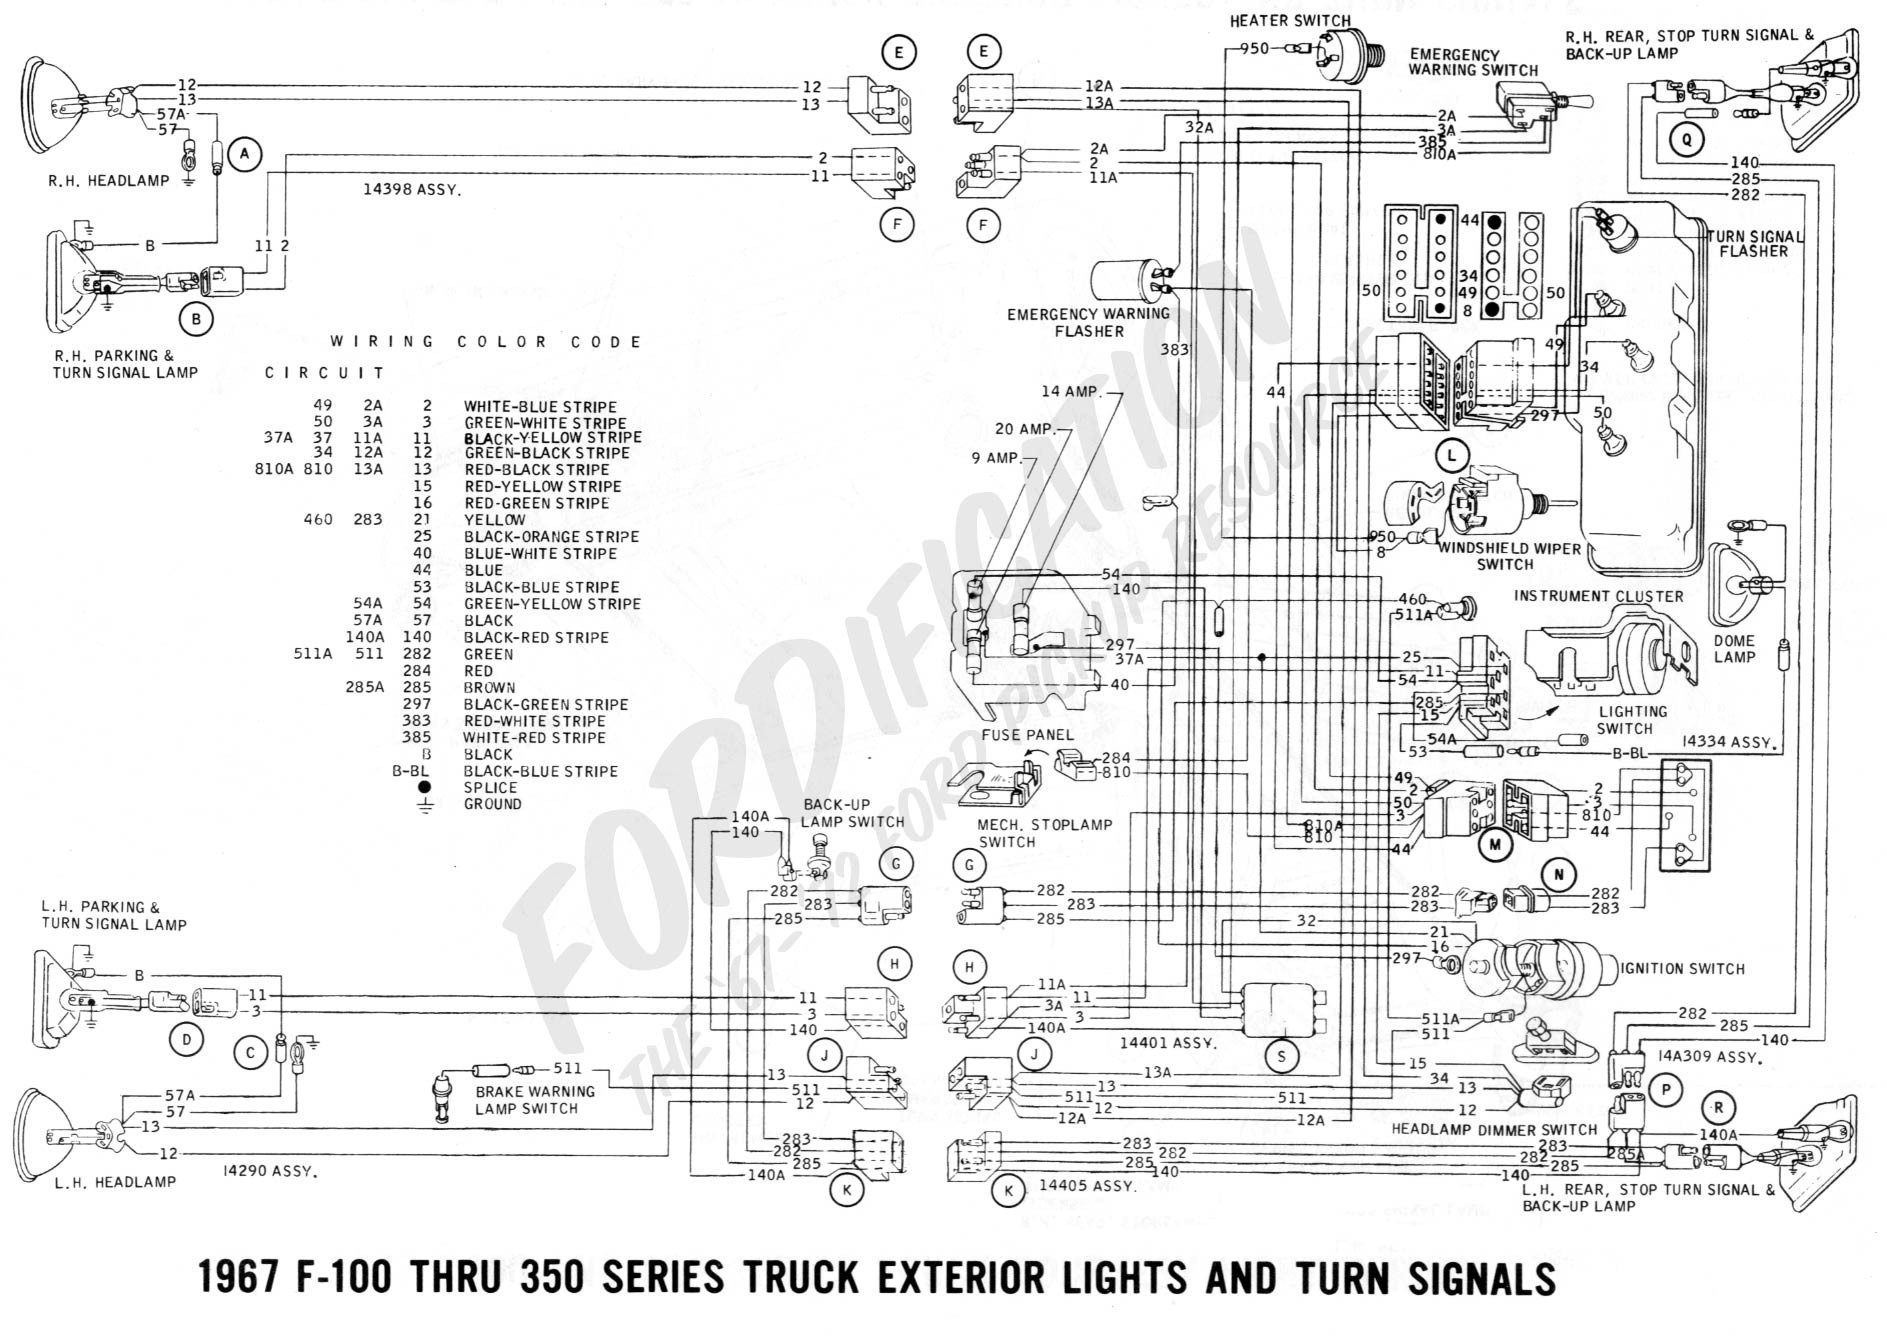 2013 ford F150 Wiring Diagram ford Truck Technical Drawings and Schematics Section H Wiring Of 2013 ford F150 Wiring Diagram